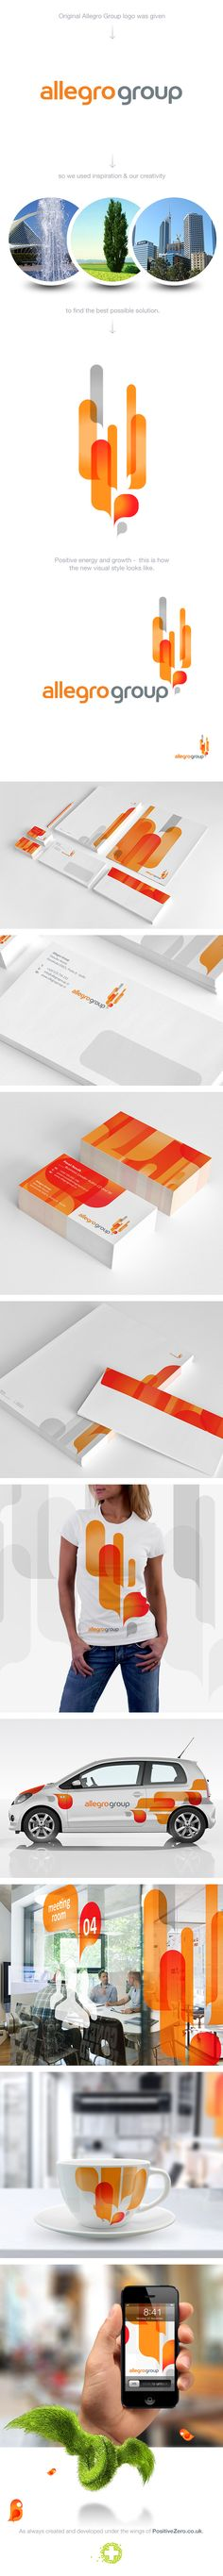 Logo diseño de Manual y Identidad Corporativa Branding (Allegro Group)